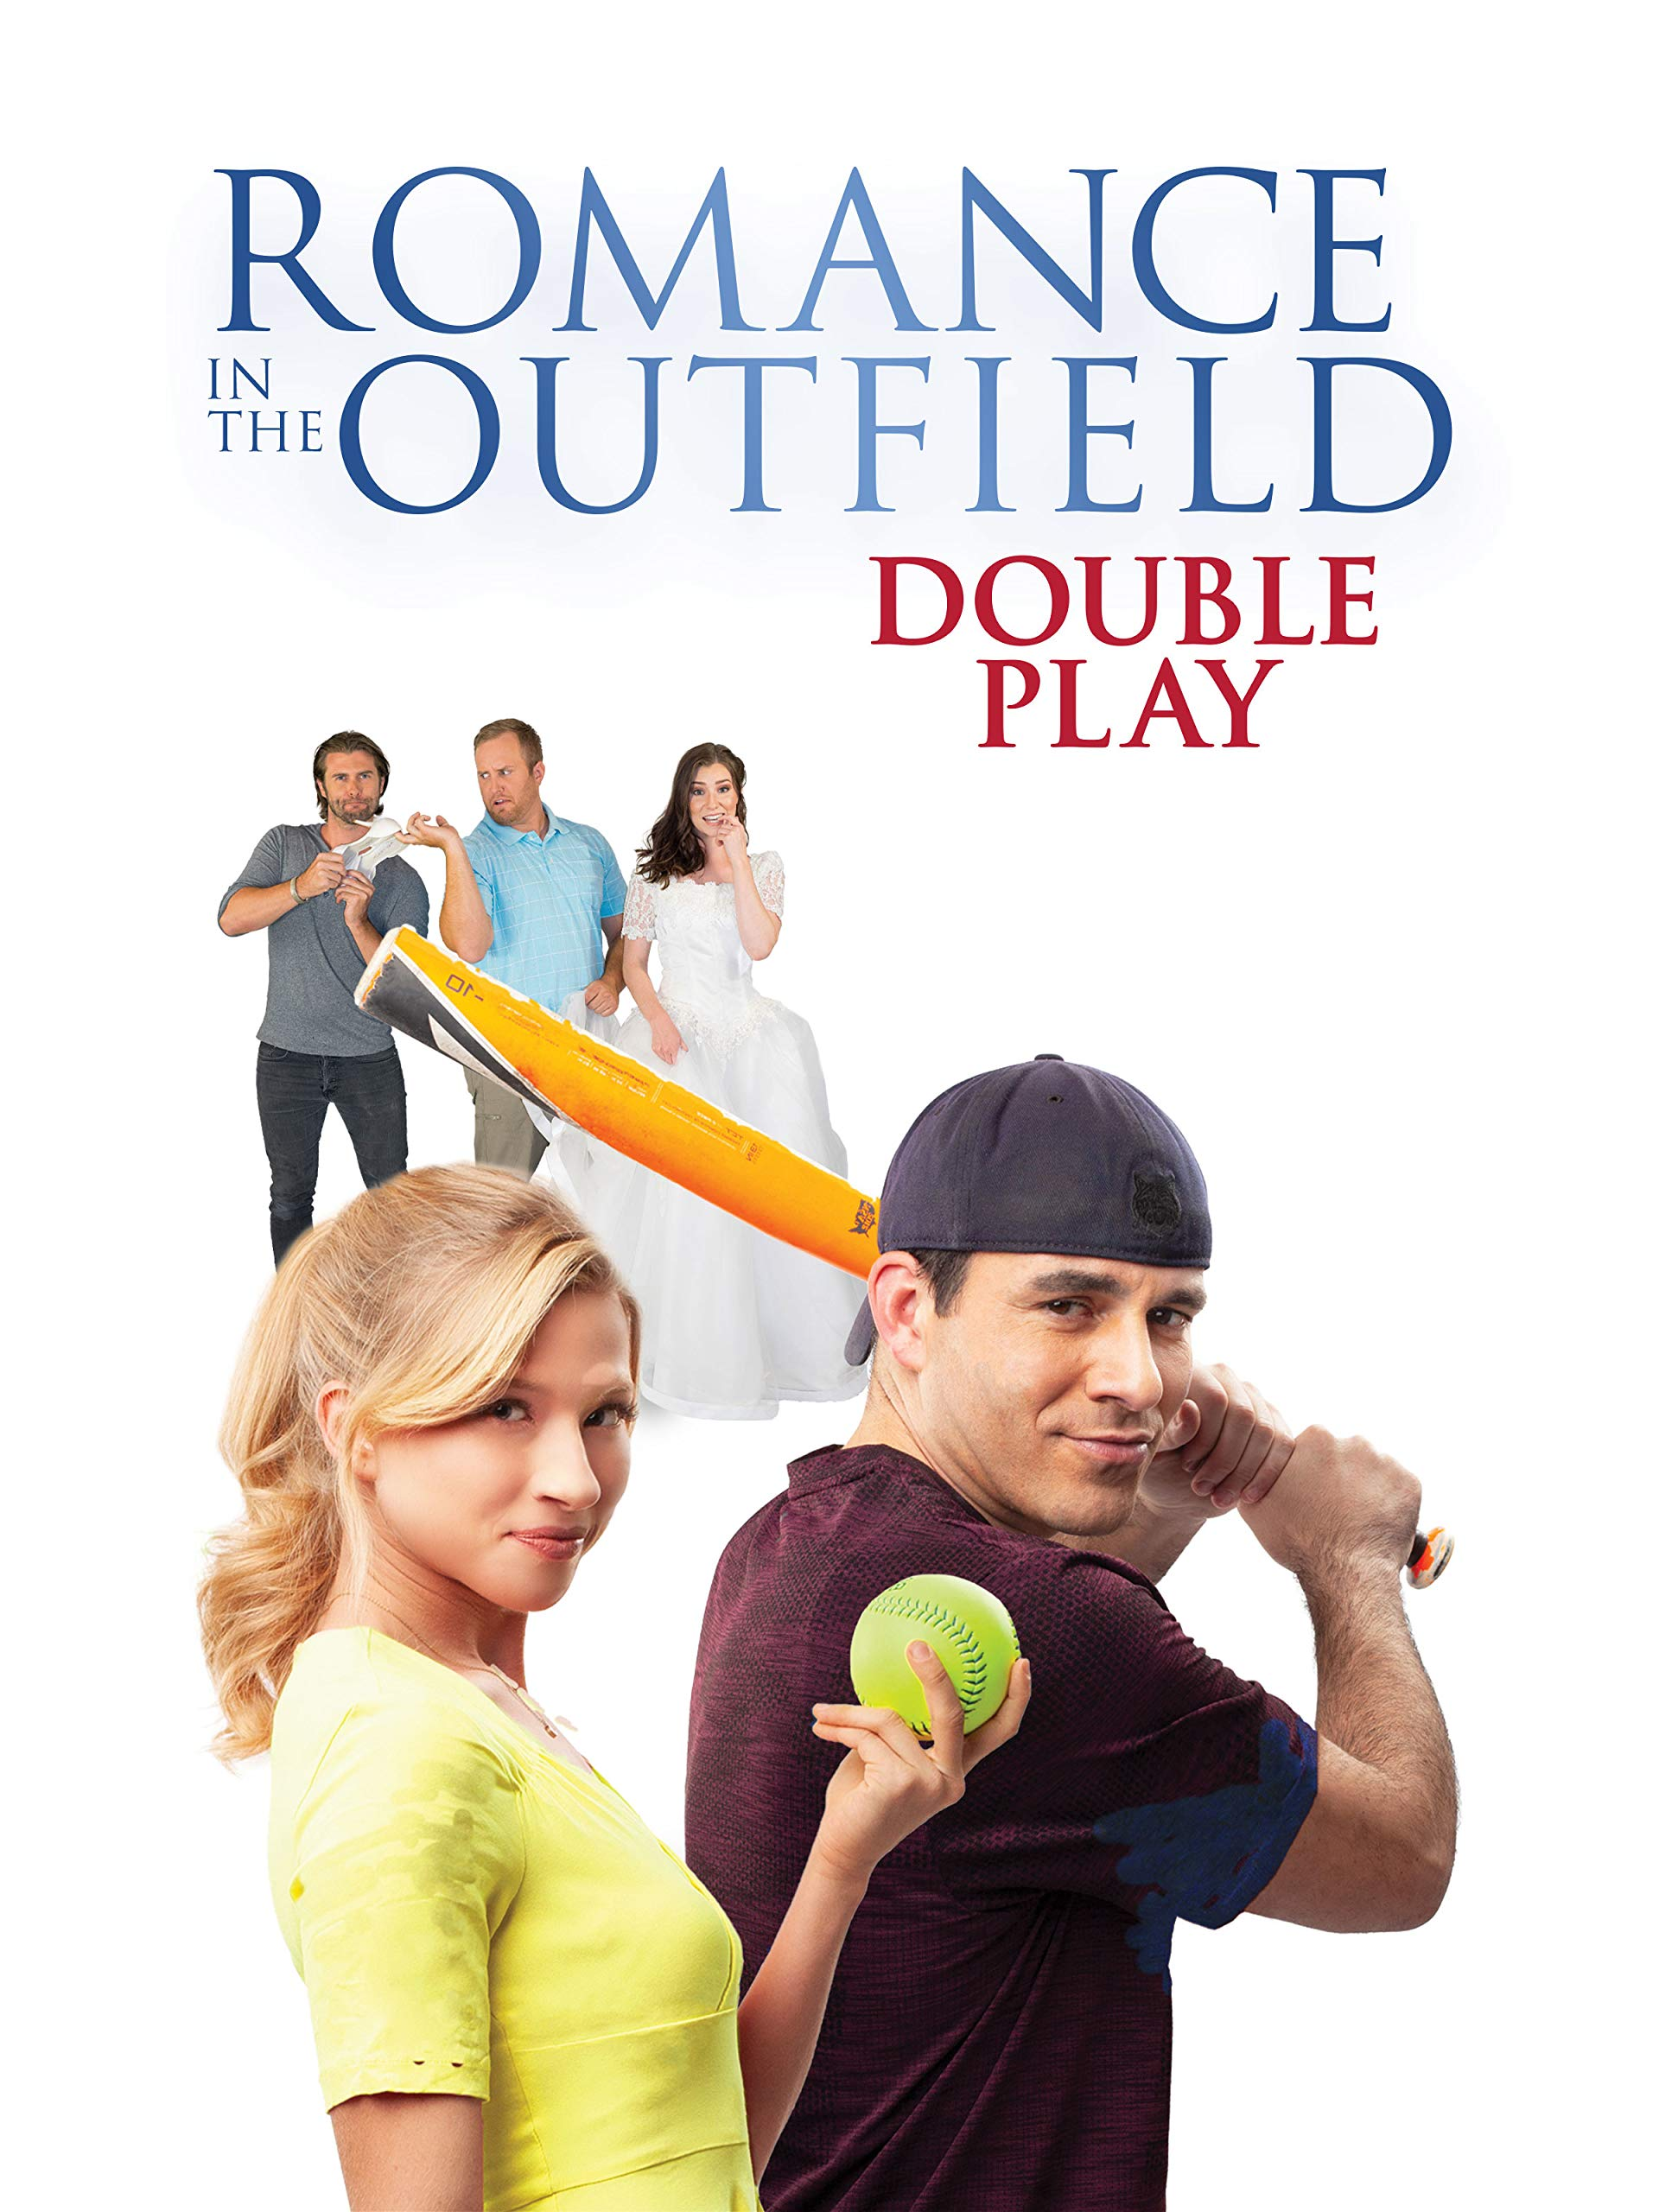 Romance In The Outfield: Double Play on Amazon Prime Video UK